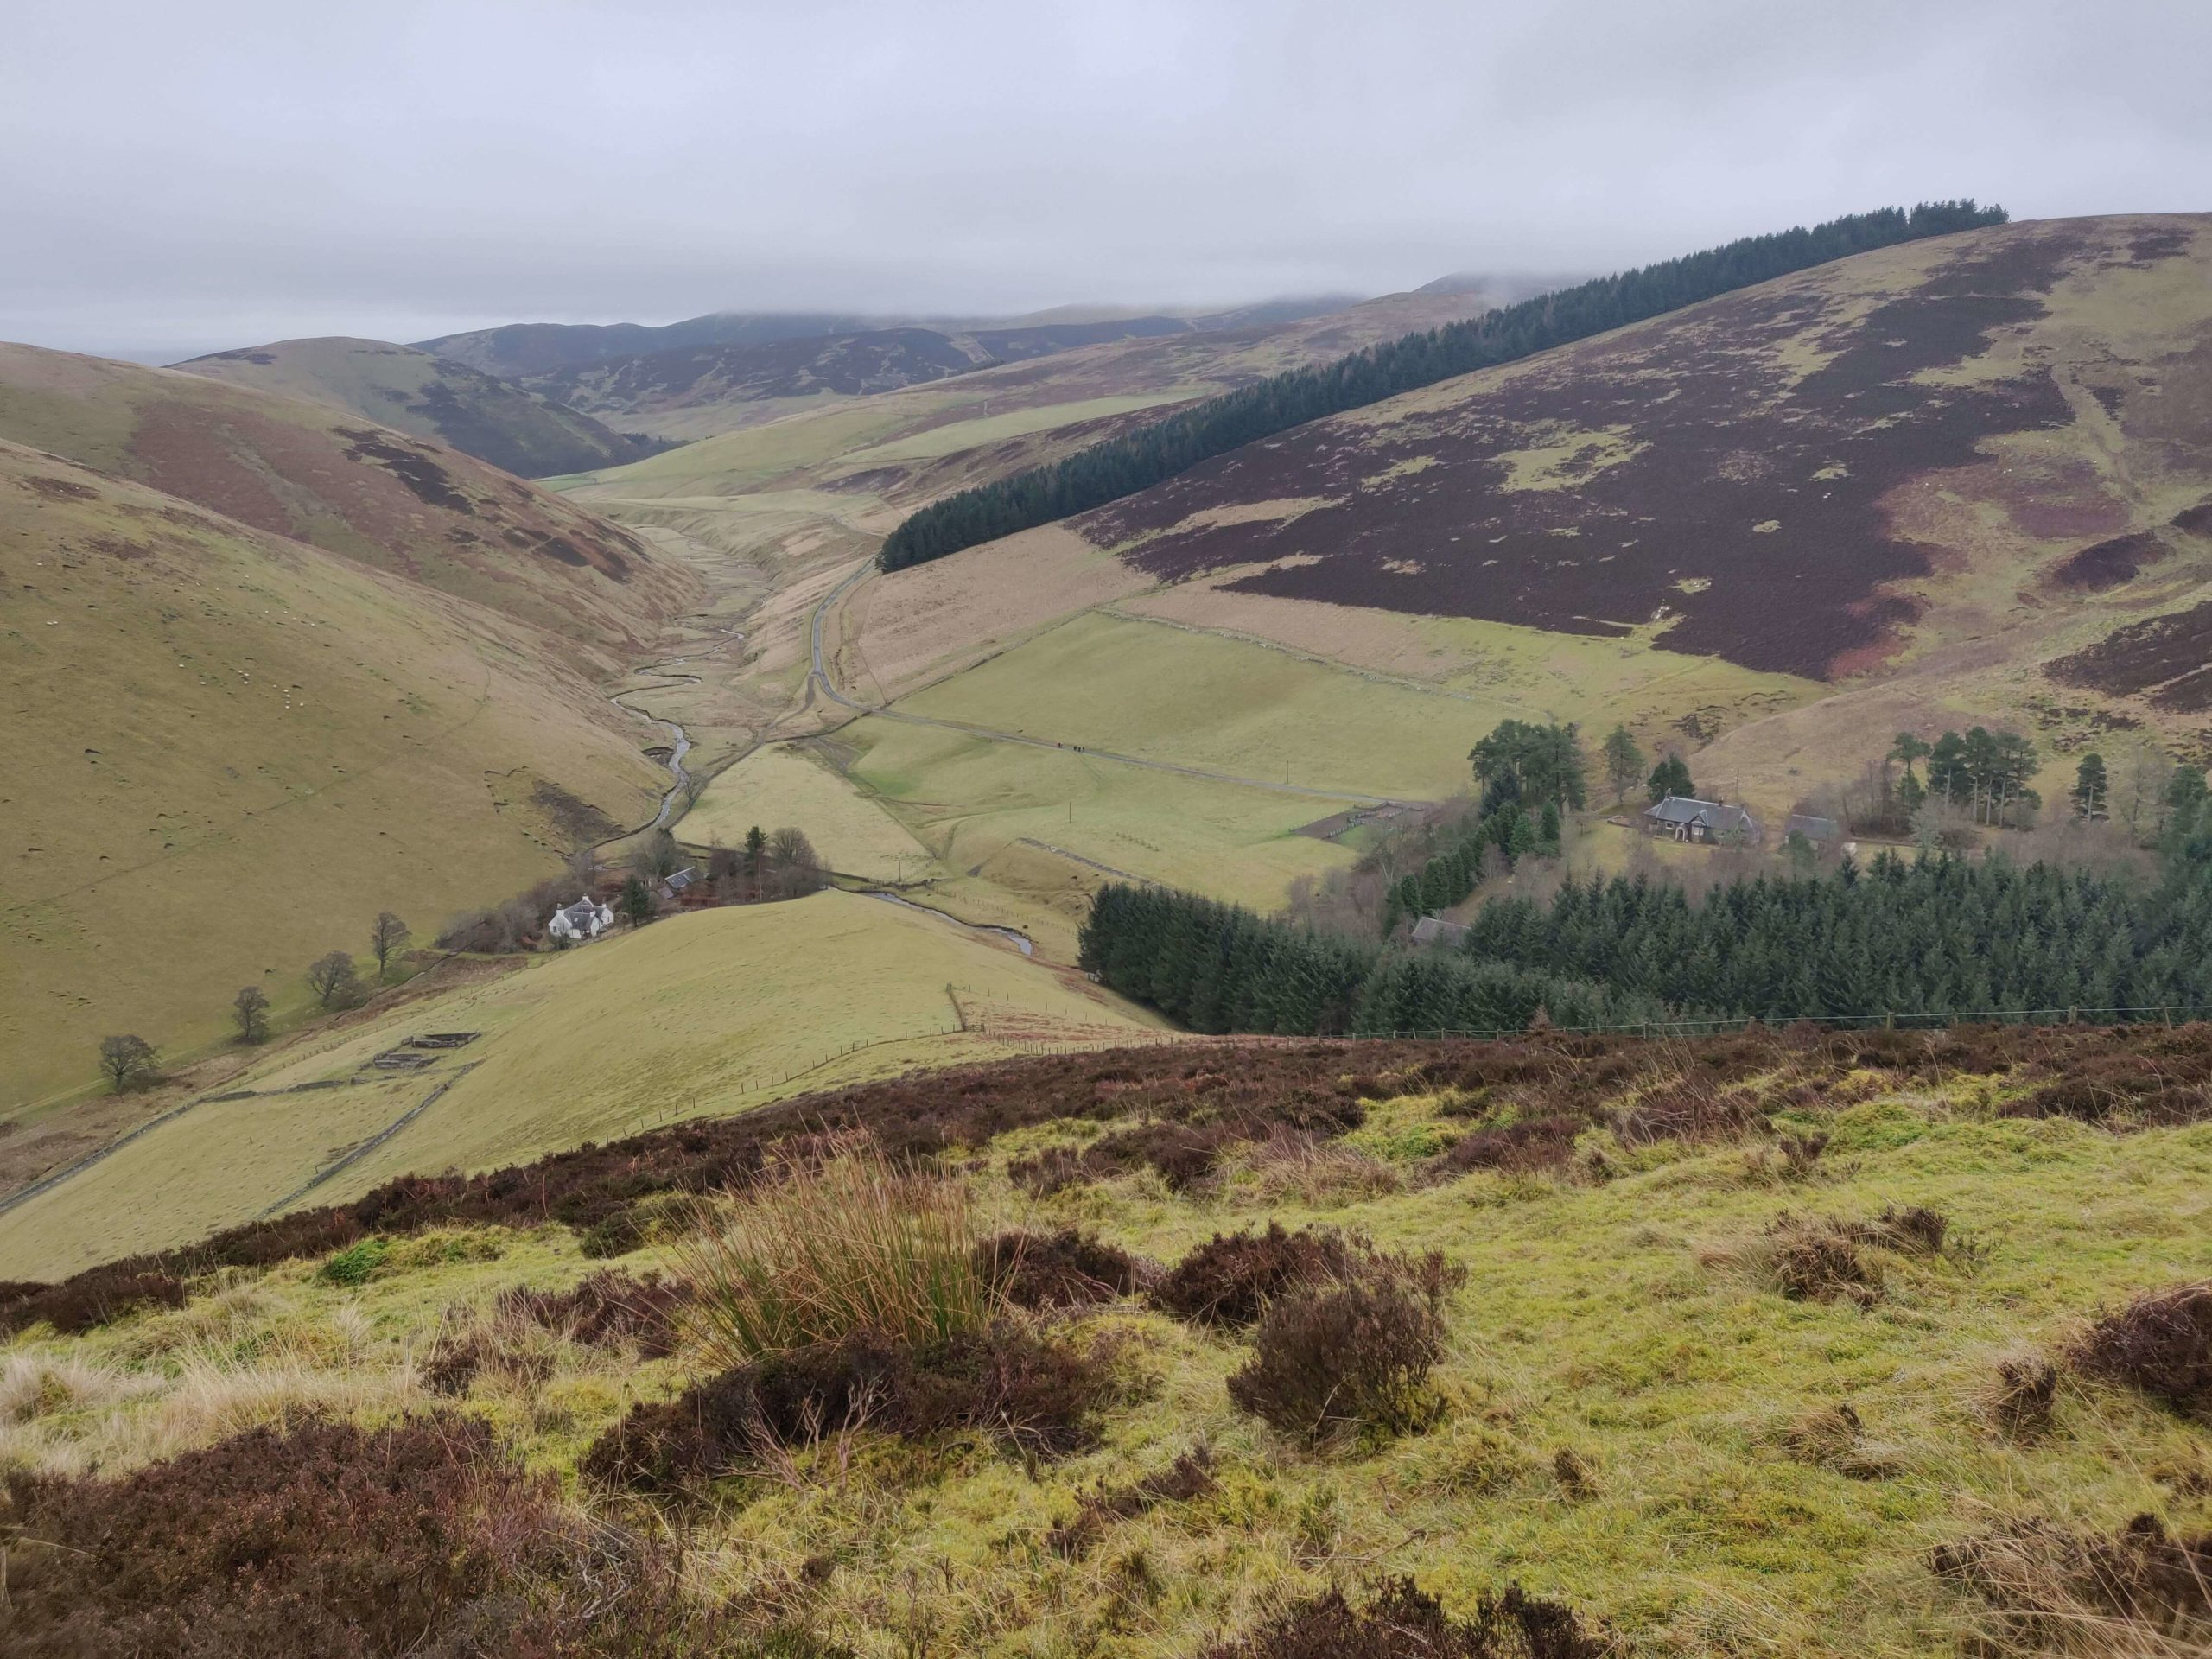 A broad view of the Baitlaw Farm Hill in South Lanarlshire.